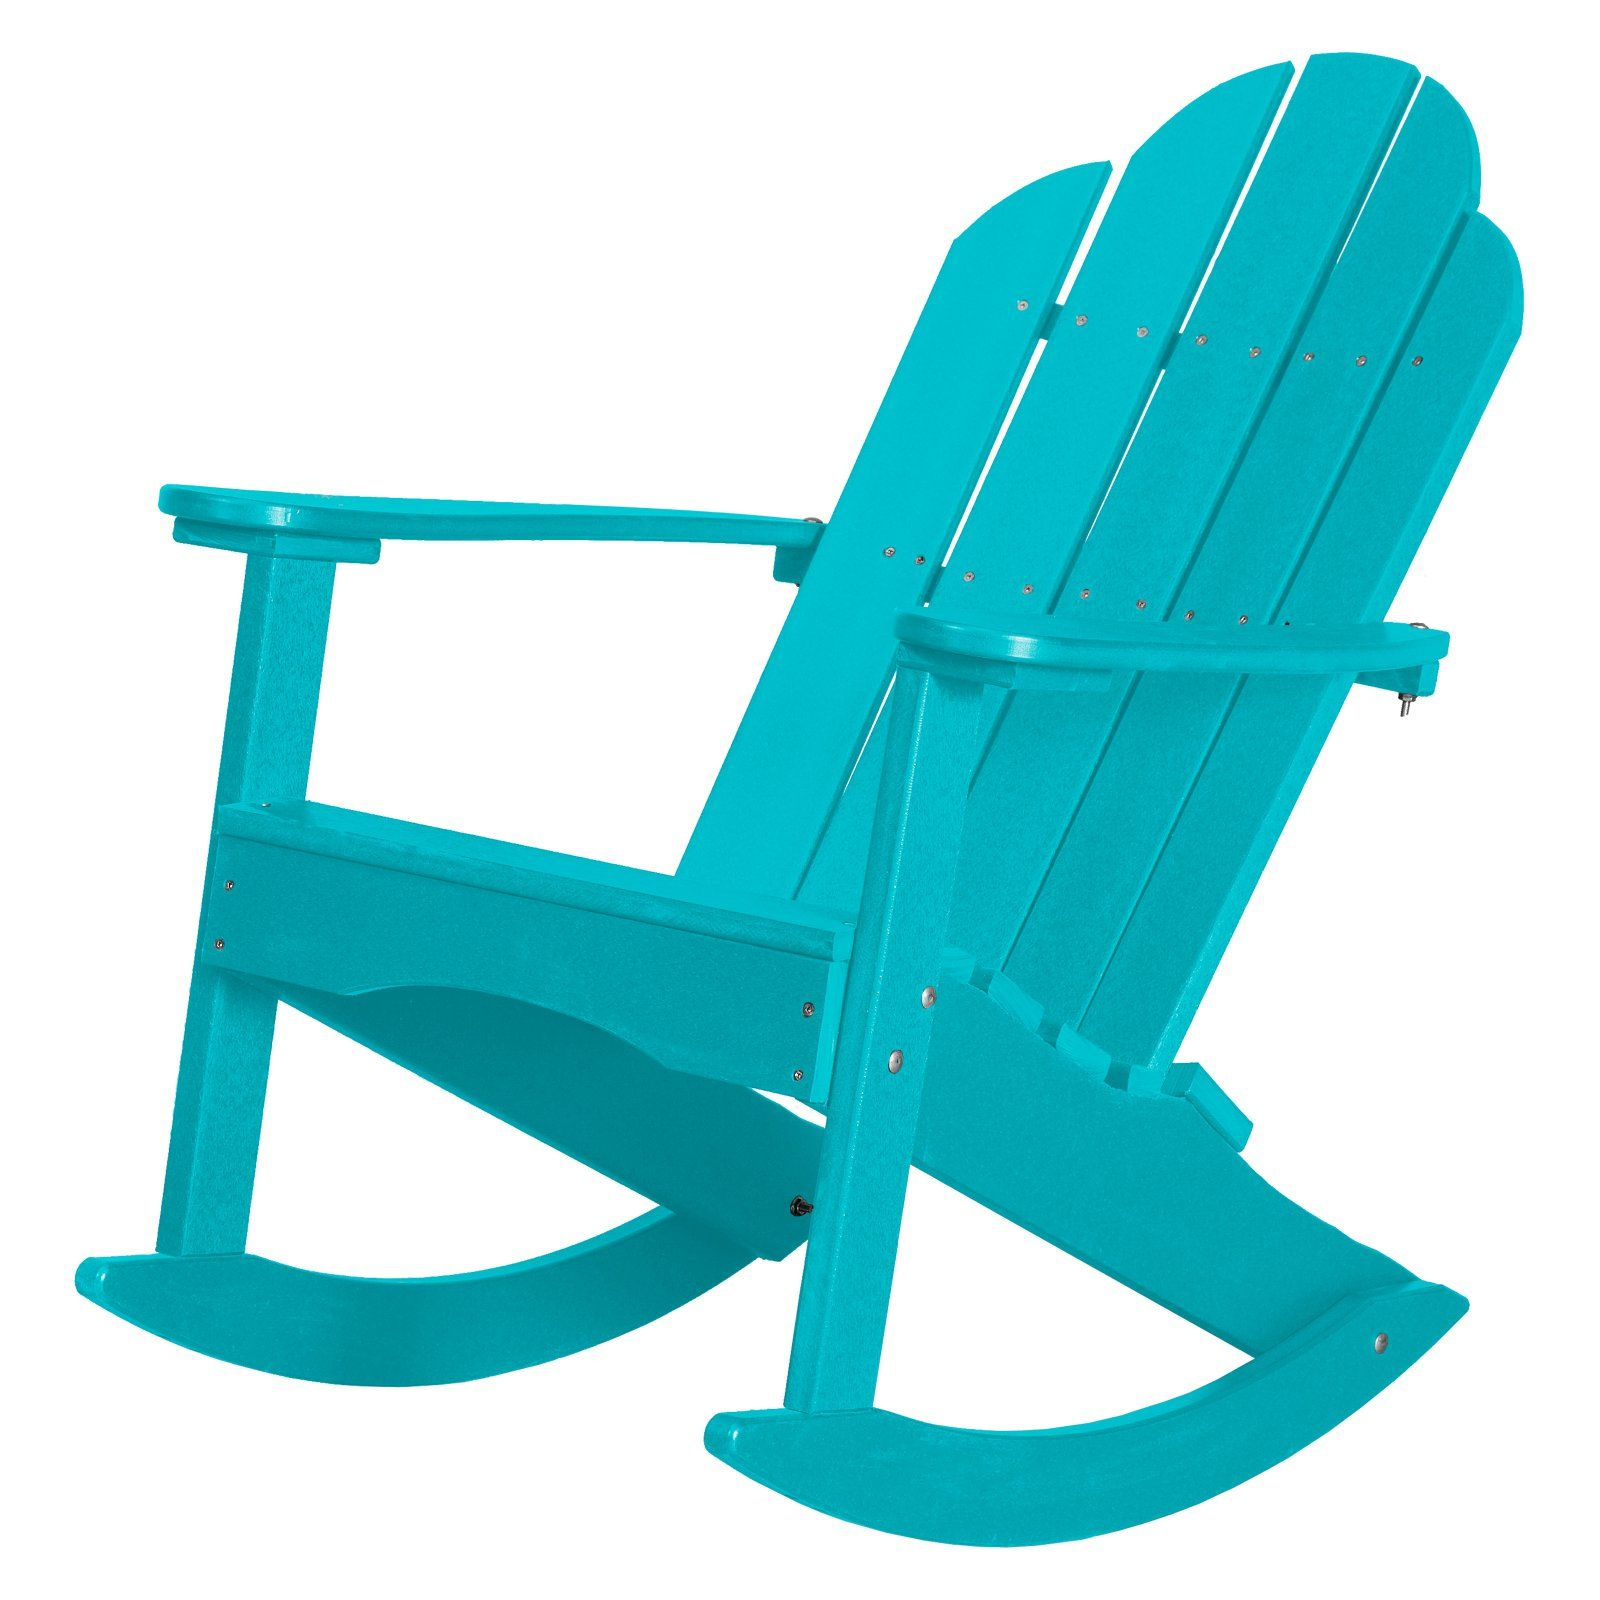 Remarkable Outdoor Wildridge Classic Plastic Adirondack Rocker Chair Andrewgaddart Wooden Chair Designs For Living Room Andrewgaddartcom